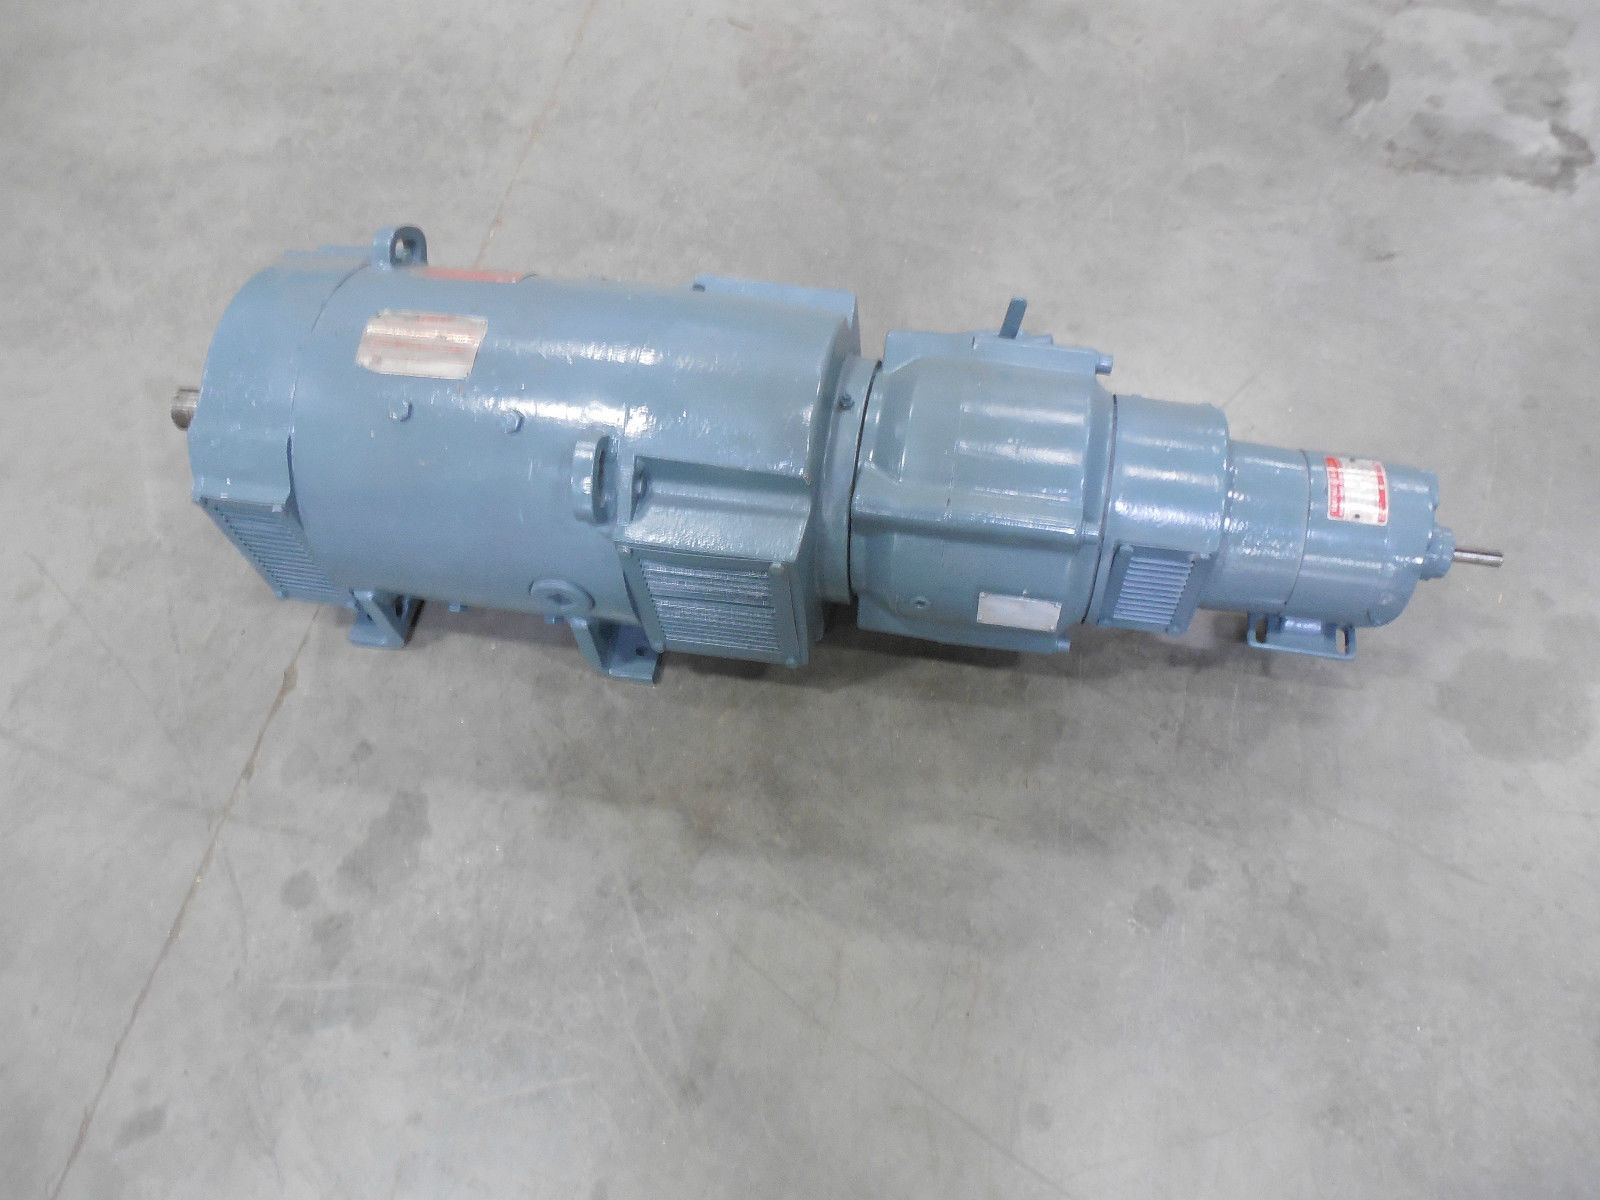 Rblt ge kinamatic dc motor 5cd173na016a007 25 hp cd287aty for 25 hp dc electric motor